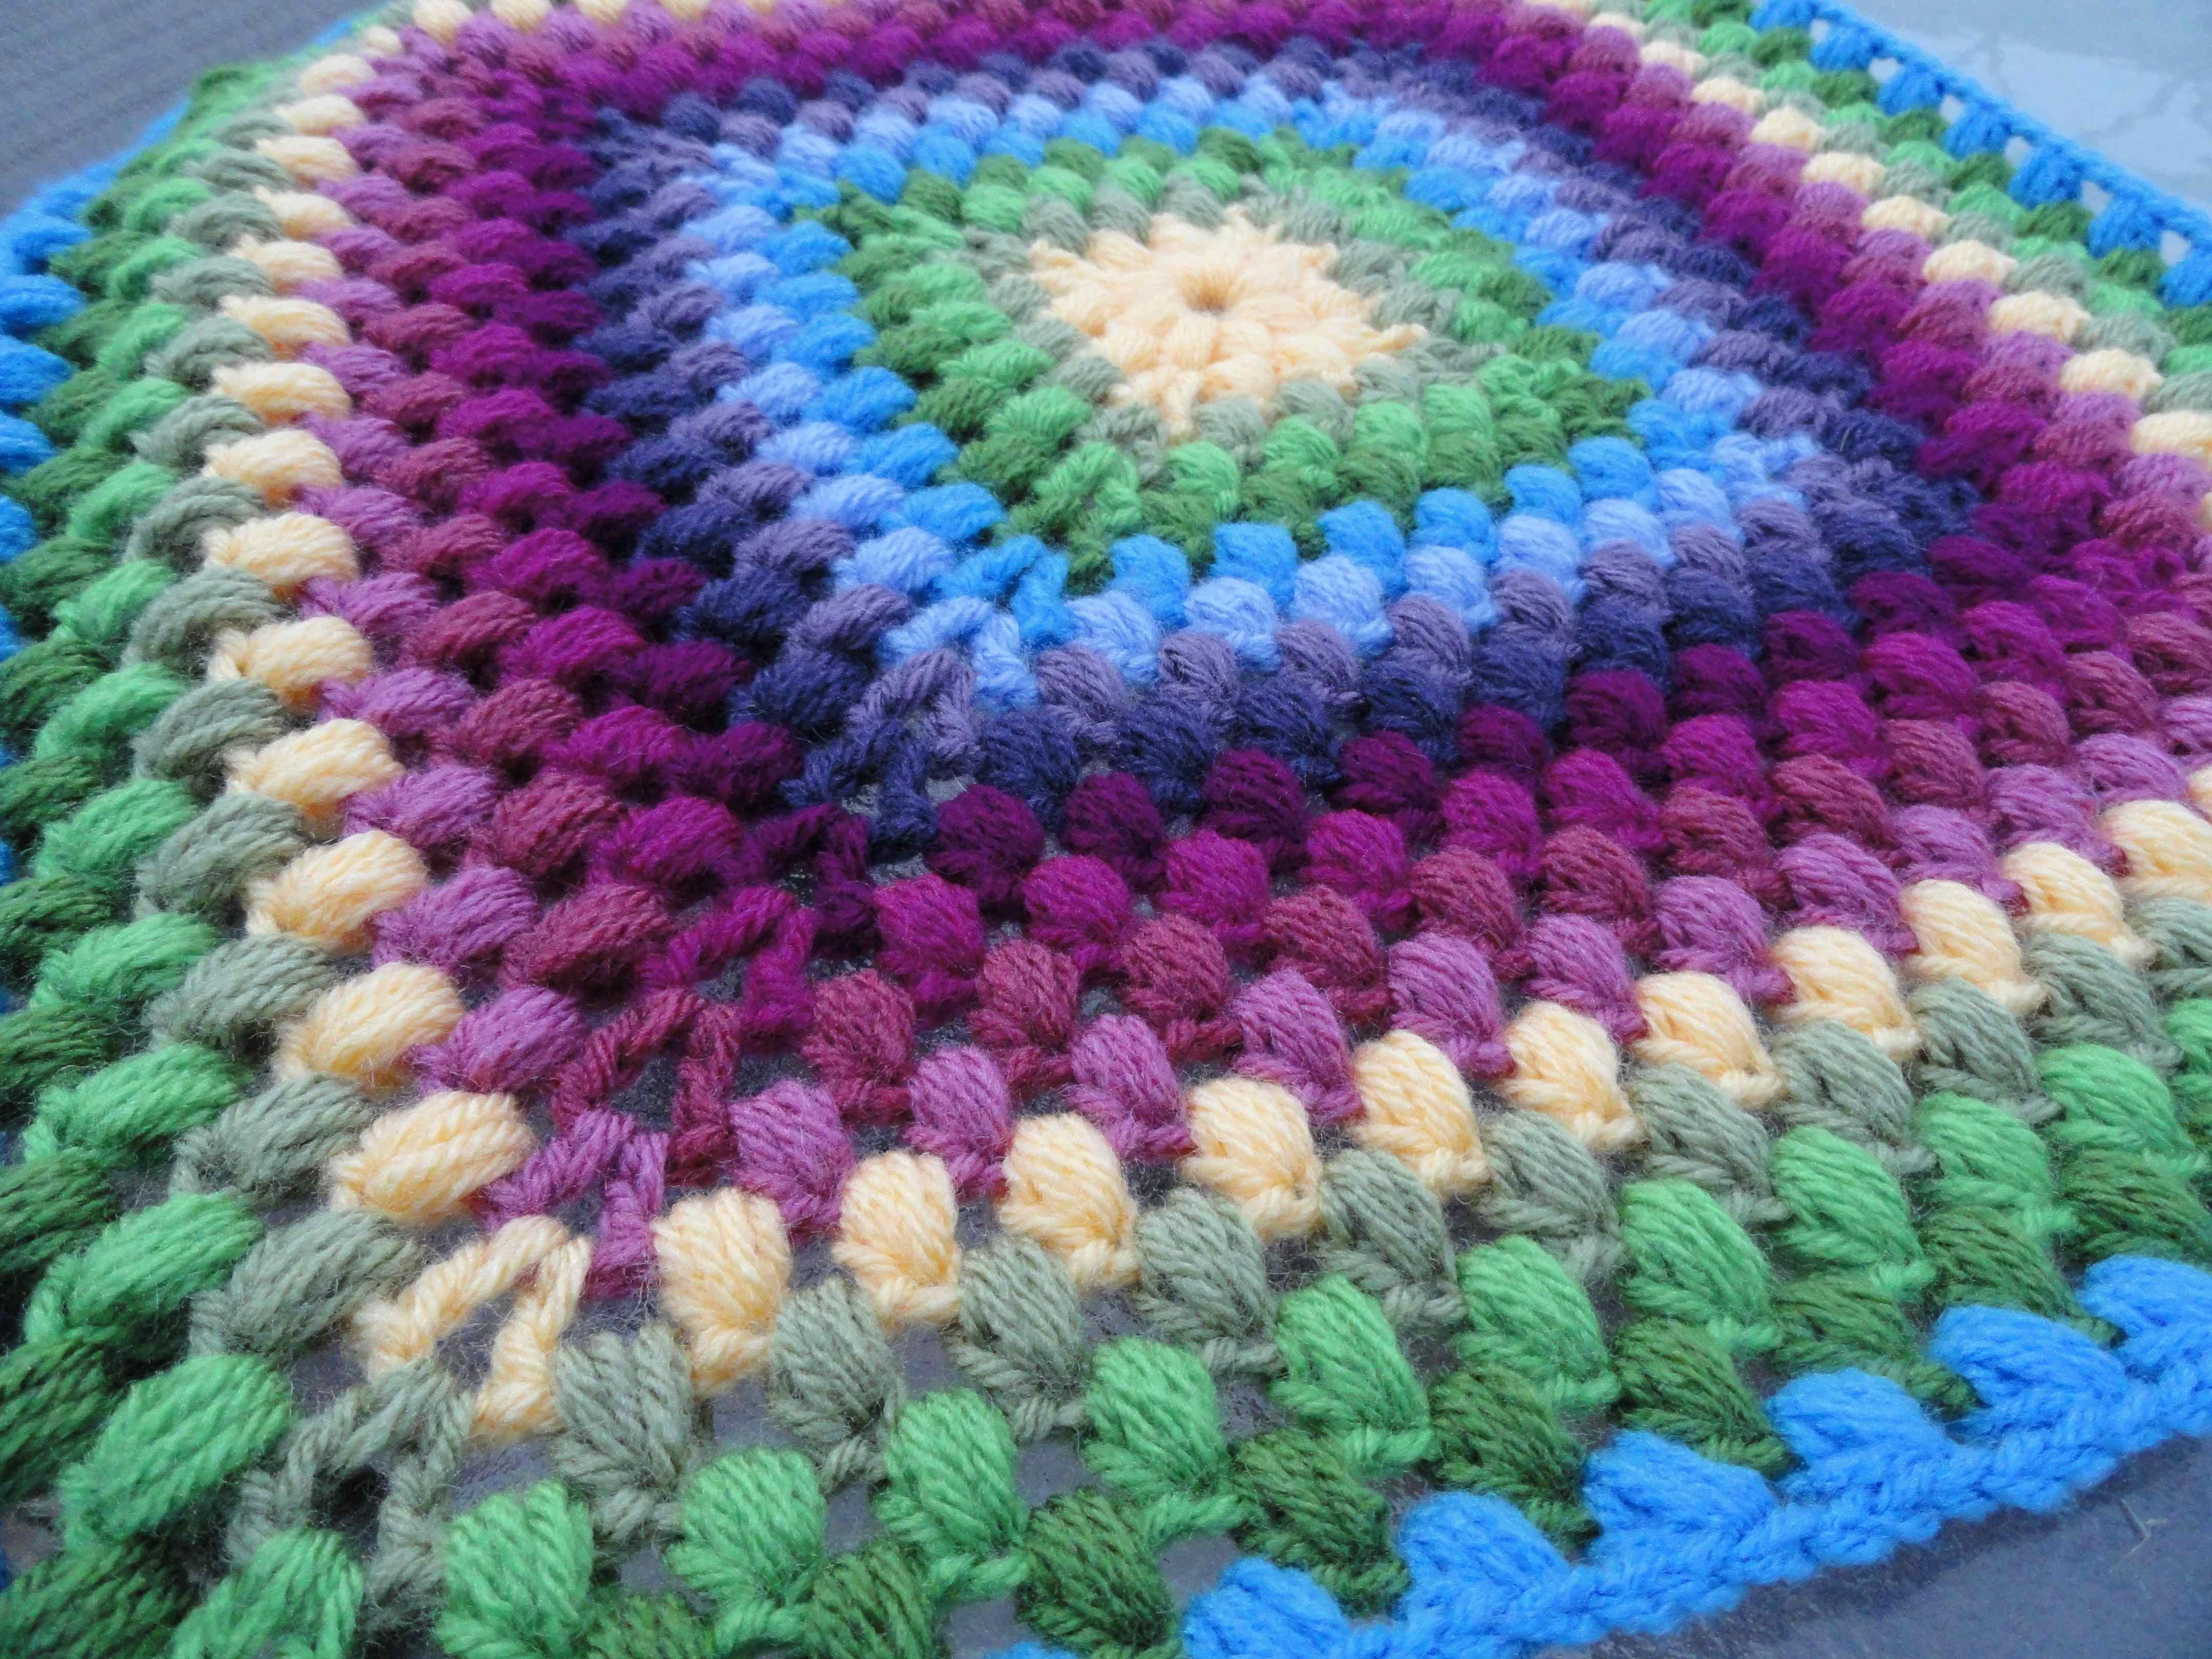 Free Granny Square Patterns Fresh Crocheted Square Patterns Free Patterns Of Incredible 49 Pictures Free Granny Square Patterns